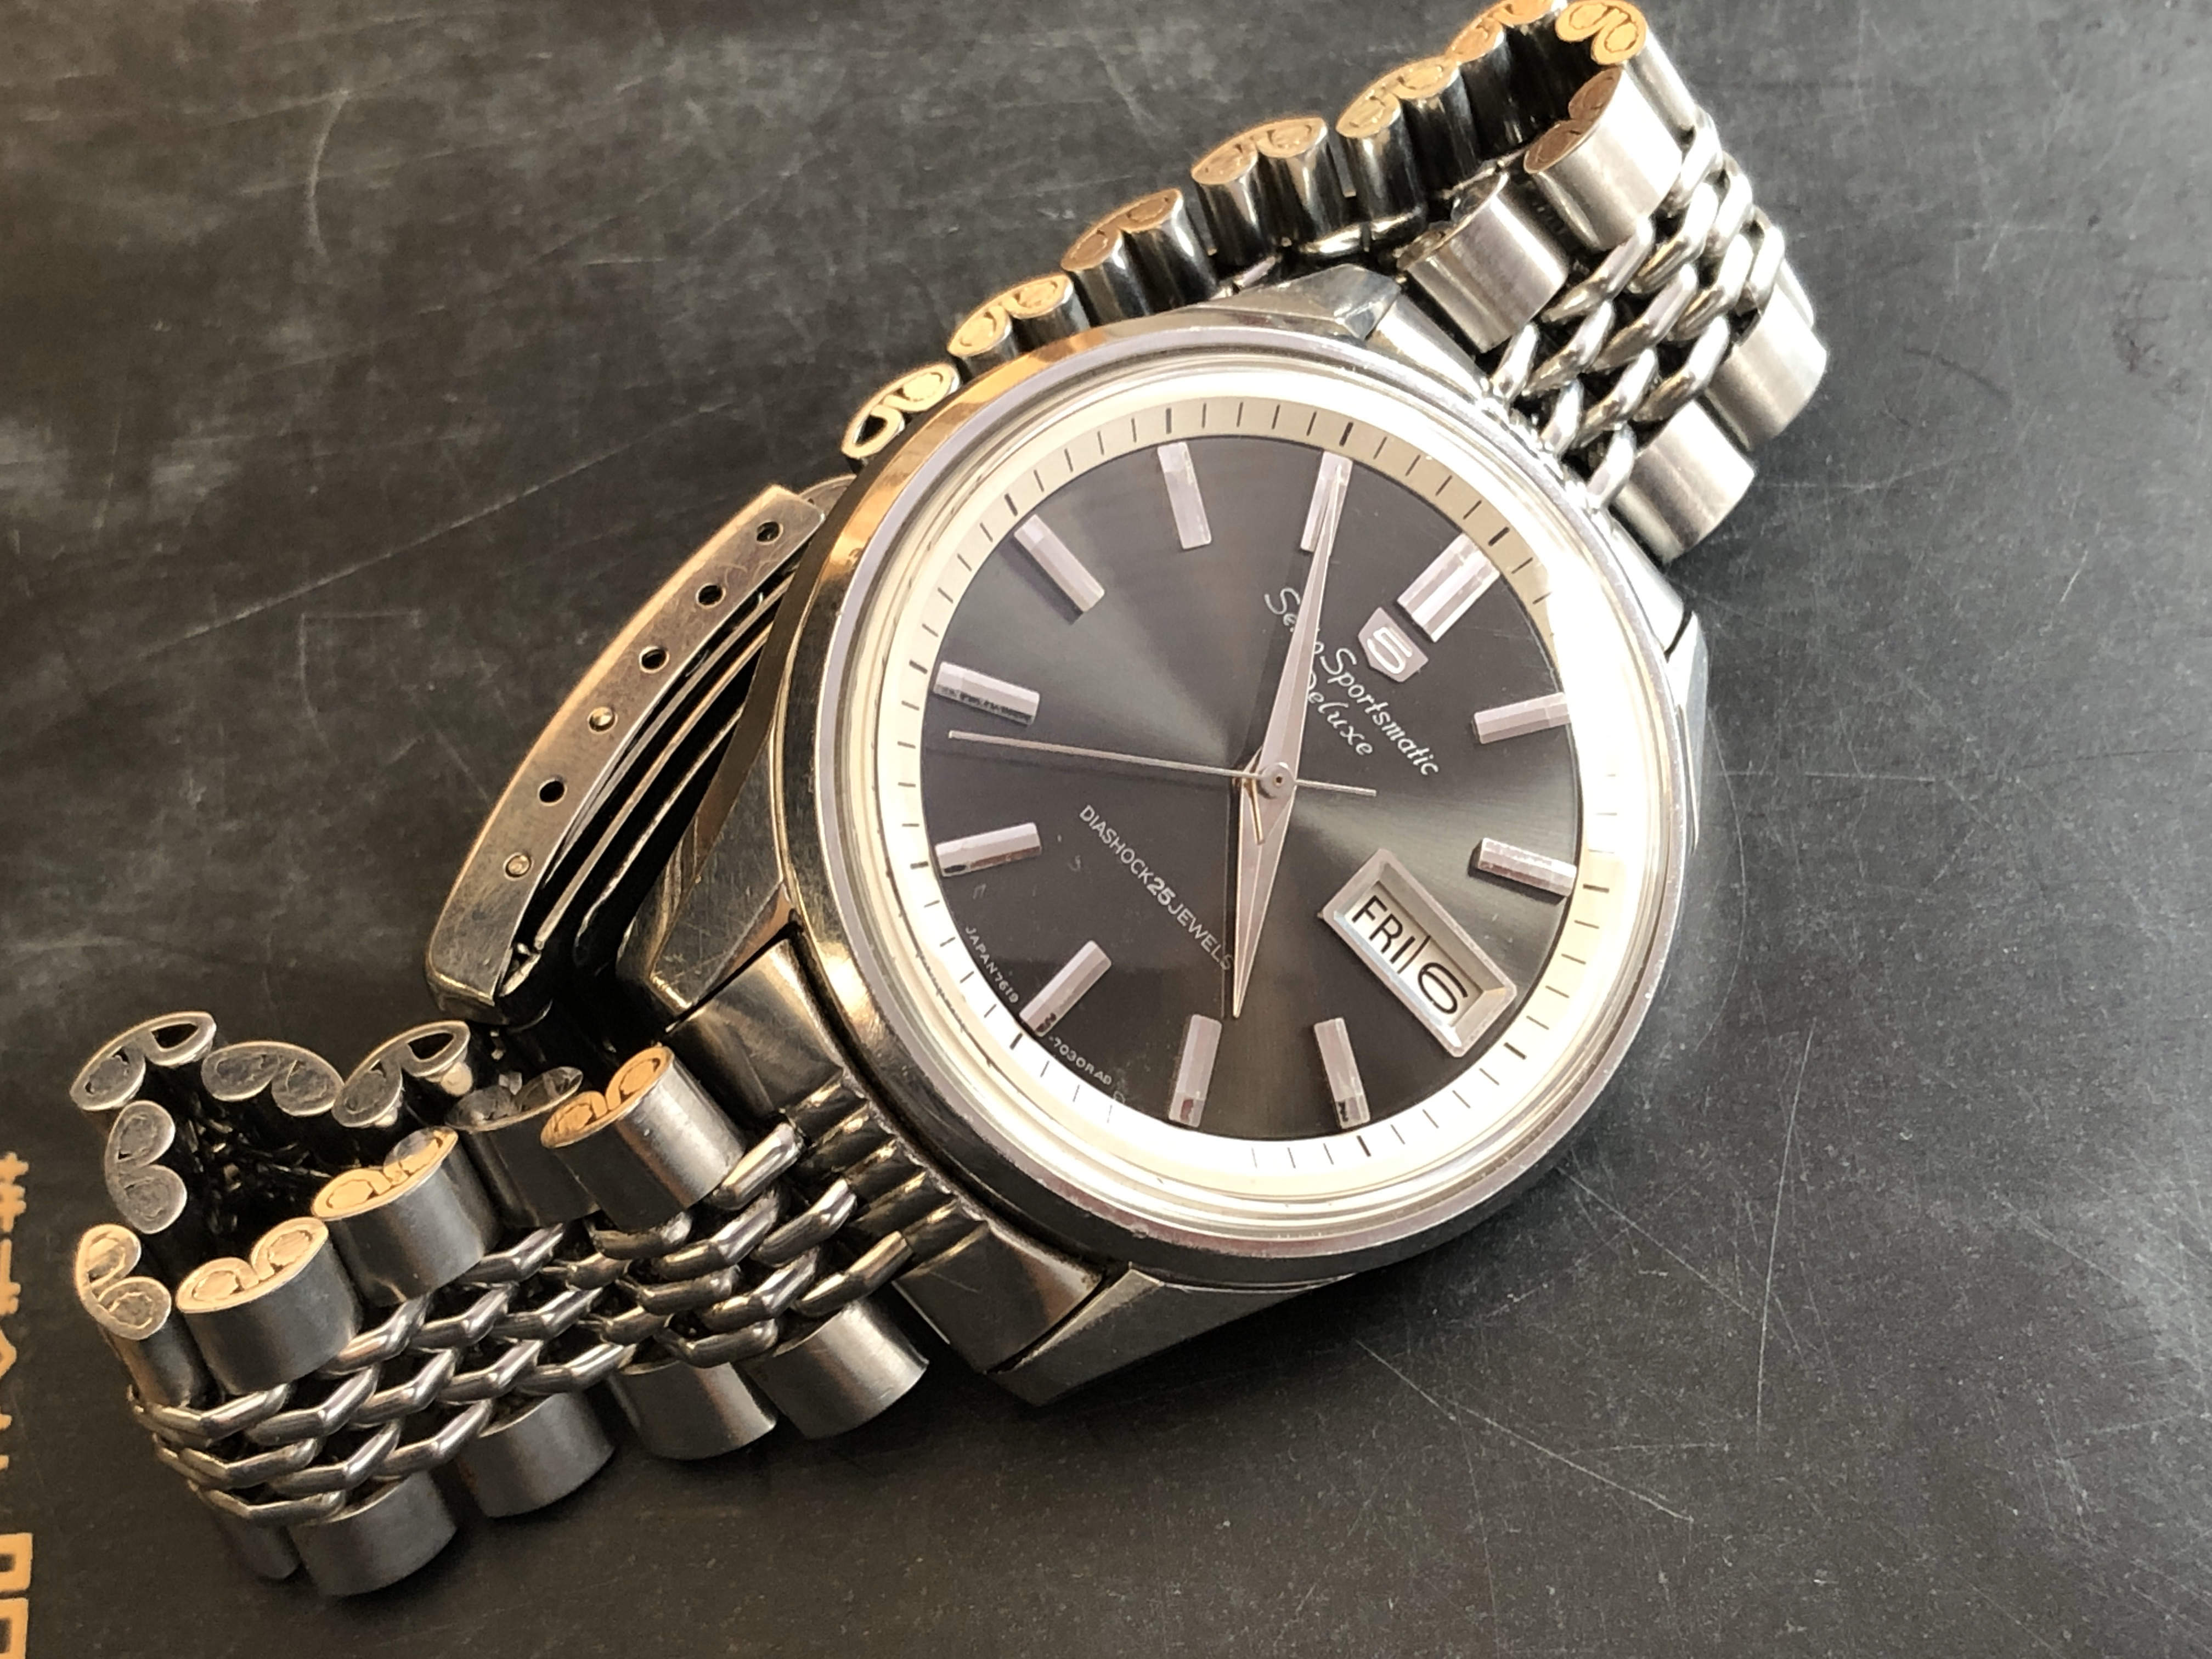 Seiko Sportsmatic Deluxe 7619-7010 (For sale)